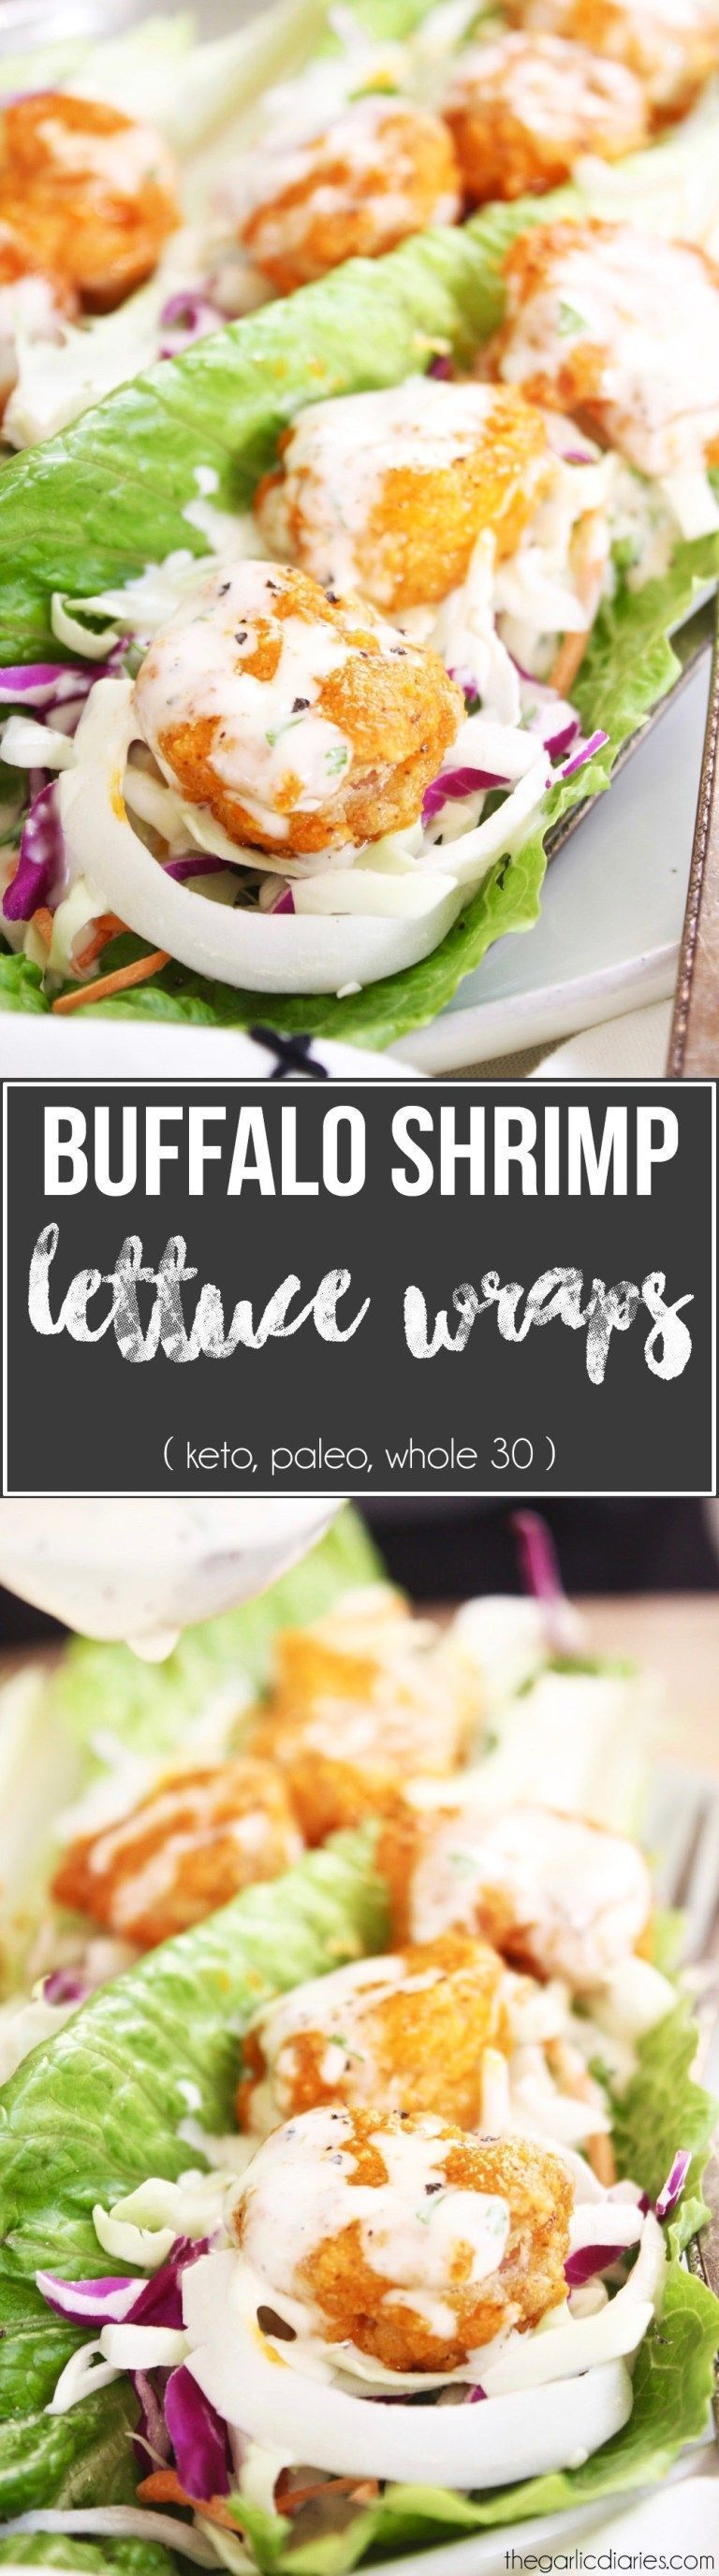 Buffalo Shrimp Lettuce Wraps (keto, paleo, whole 30) #buffaloshrimp Buffalo Shrimp Lettuce Wraps (keto, paleo, whole 30) #buffaloshrimp Buffalo Shrimp Lettuce Wraps (keto, paleo, whole 30) #buffaloshrimp Buffalo Shrimp Lettuce Wraps (keto, paleo, whole 30) #buffaloshrimp Buffalo Shrimp Lettuce Wraps (keto, paleo, whole 30) #buffaloshrimp Buffalo Shrimp Lettuce Wraps (keto, paleo, whole 30) #buffaloshrimp Buffalo Shrimp Lettuce Wraps (keto, paleo, whole 30) #buffaloshrimp Buffalo Shrimp Lettuce W #buffaloshrimp